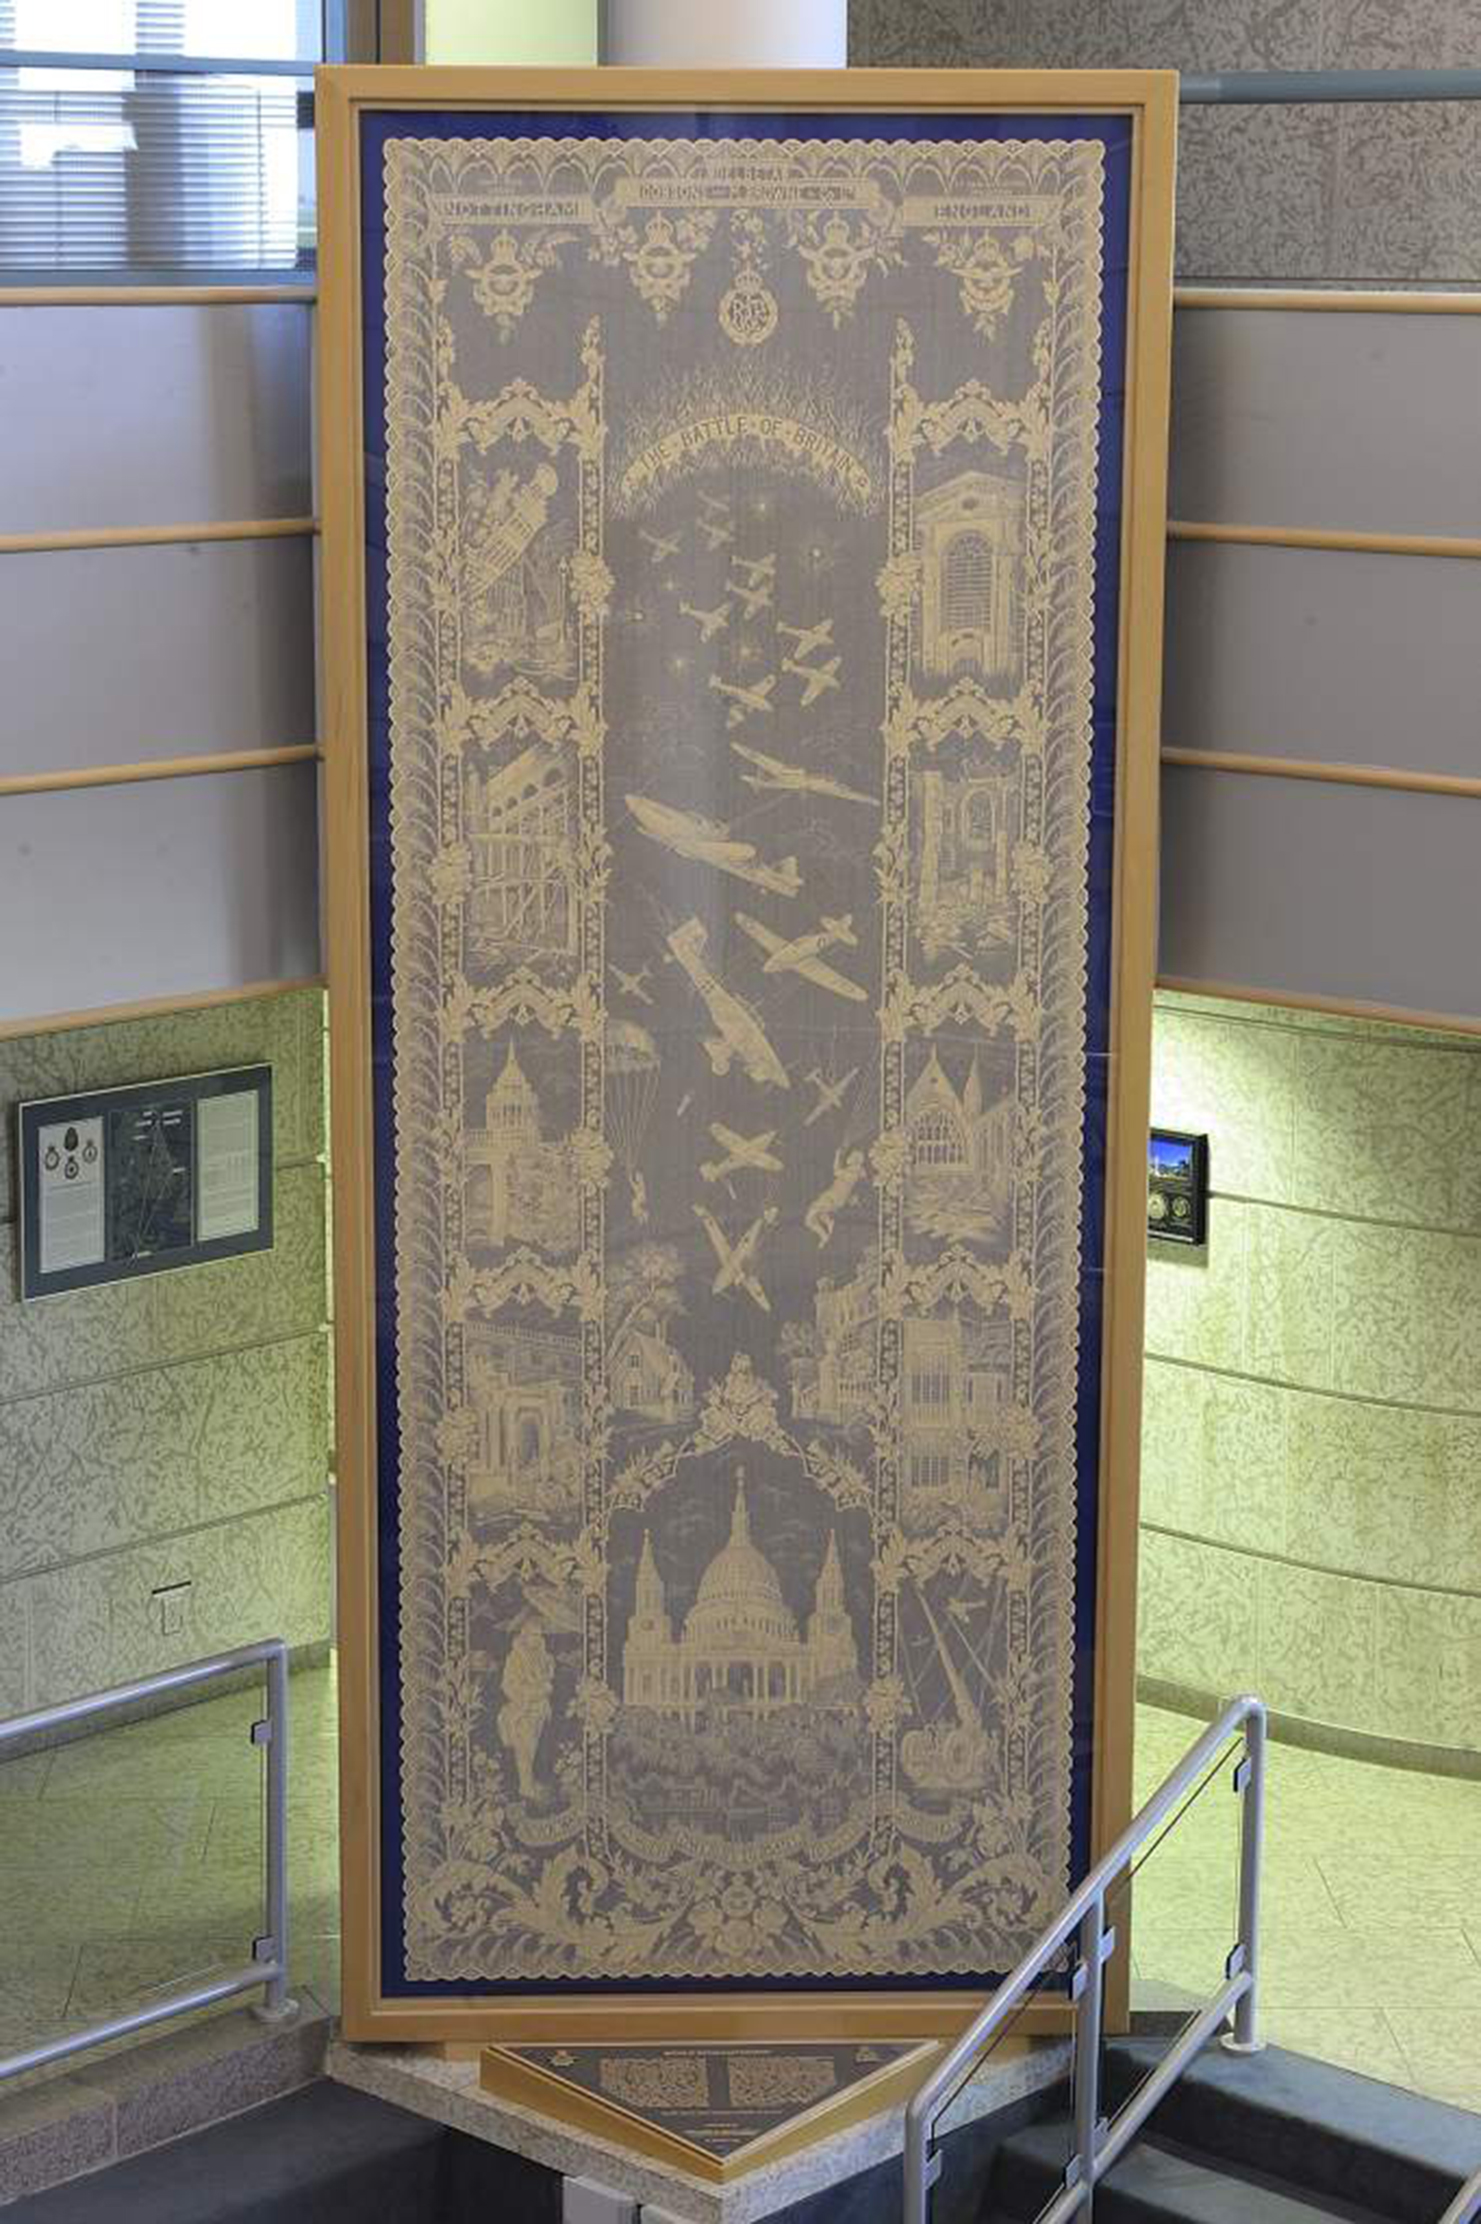 The Battle of Britain Commemorative Lace Tapestry is on display at the Air Force Heritage Museum and Air Park in Winnipeg, Manitoba.